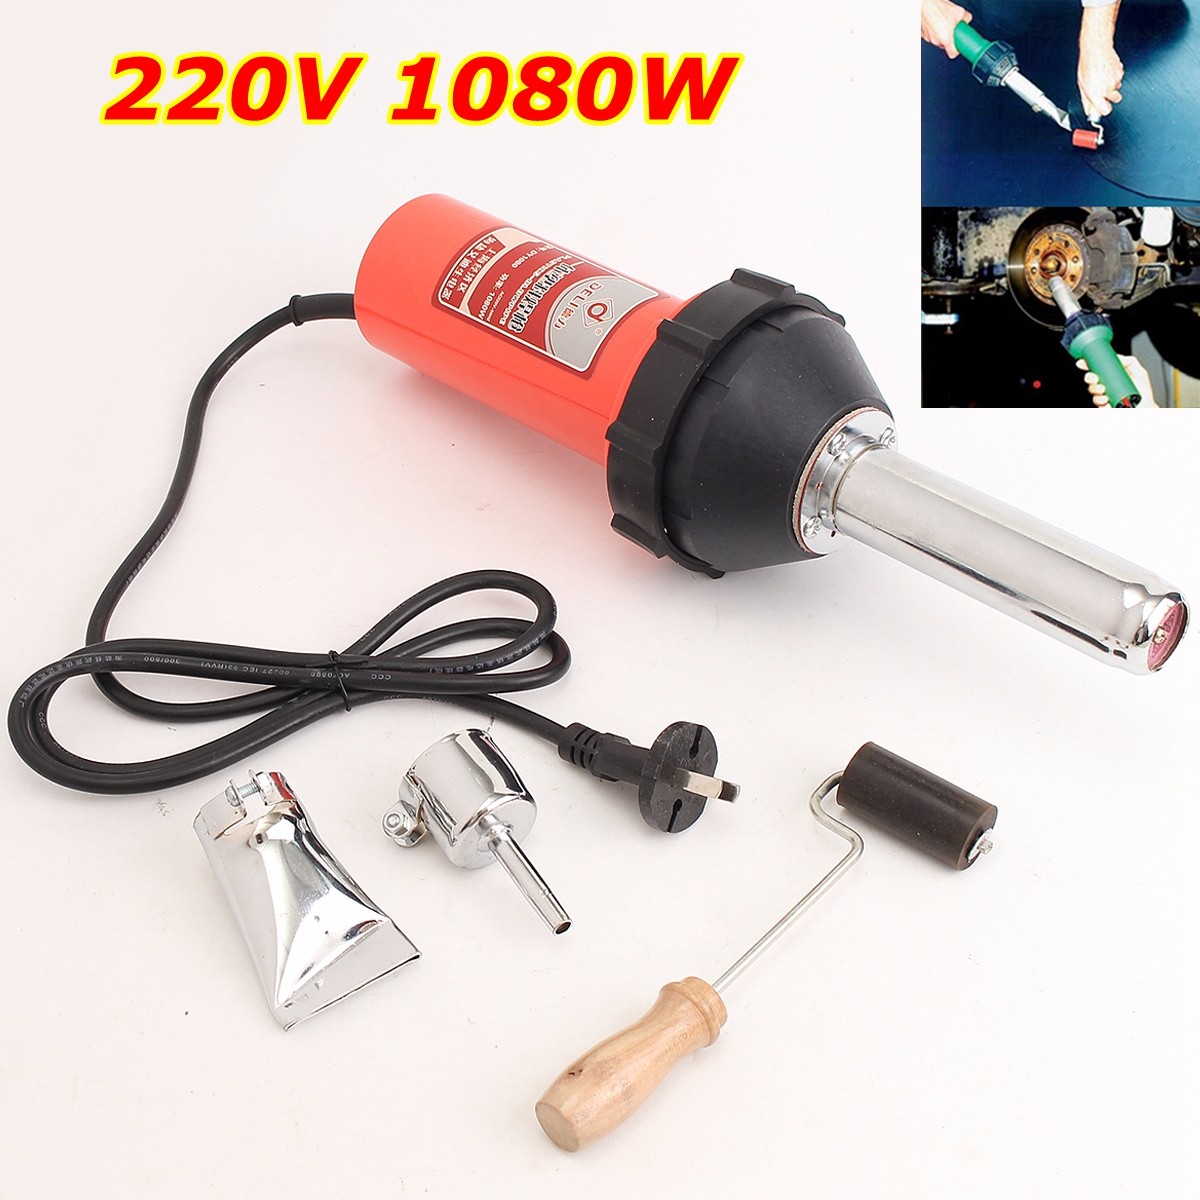 220V 1080W 50Hz Plastic Welding Hot Air Torch Welding Gun Pistol Tool w/ Nozzle and Pressure Roller Kit for Welding Machine 220v hot melt plastic welding machine lst600b with anti hood welding extrusion hot air gun handwheel extruder for tank tube